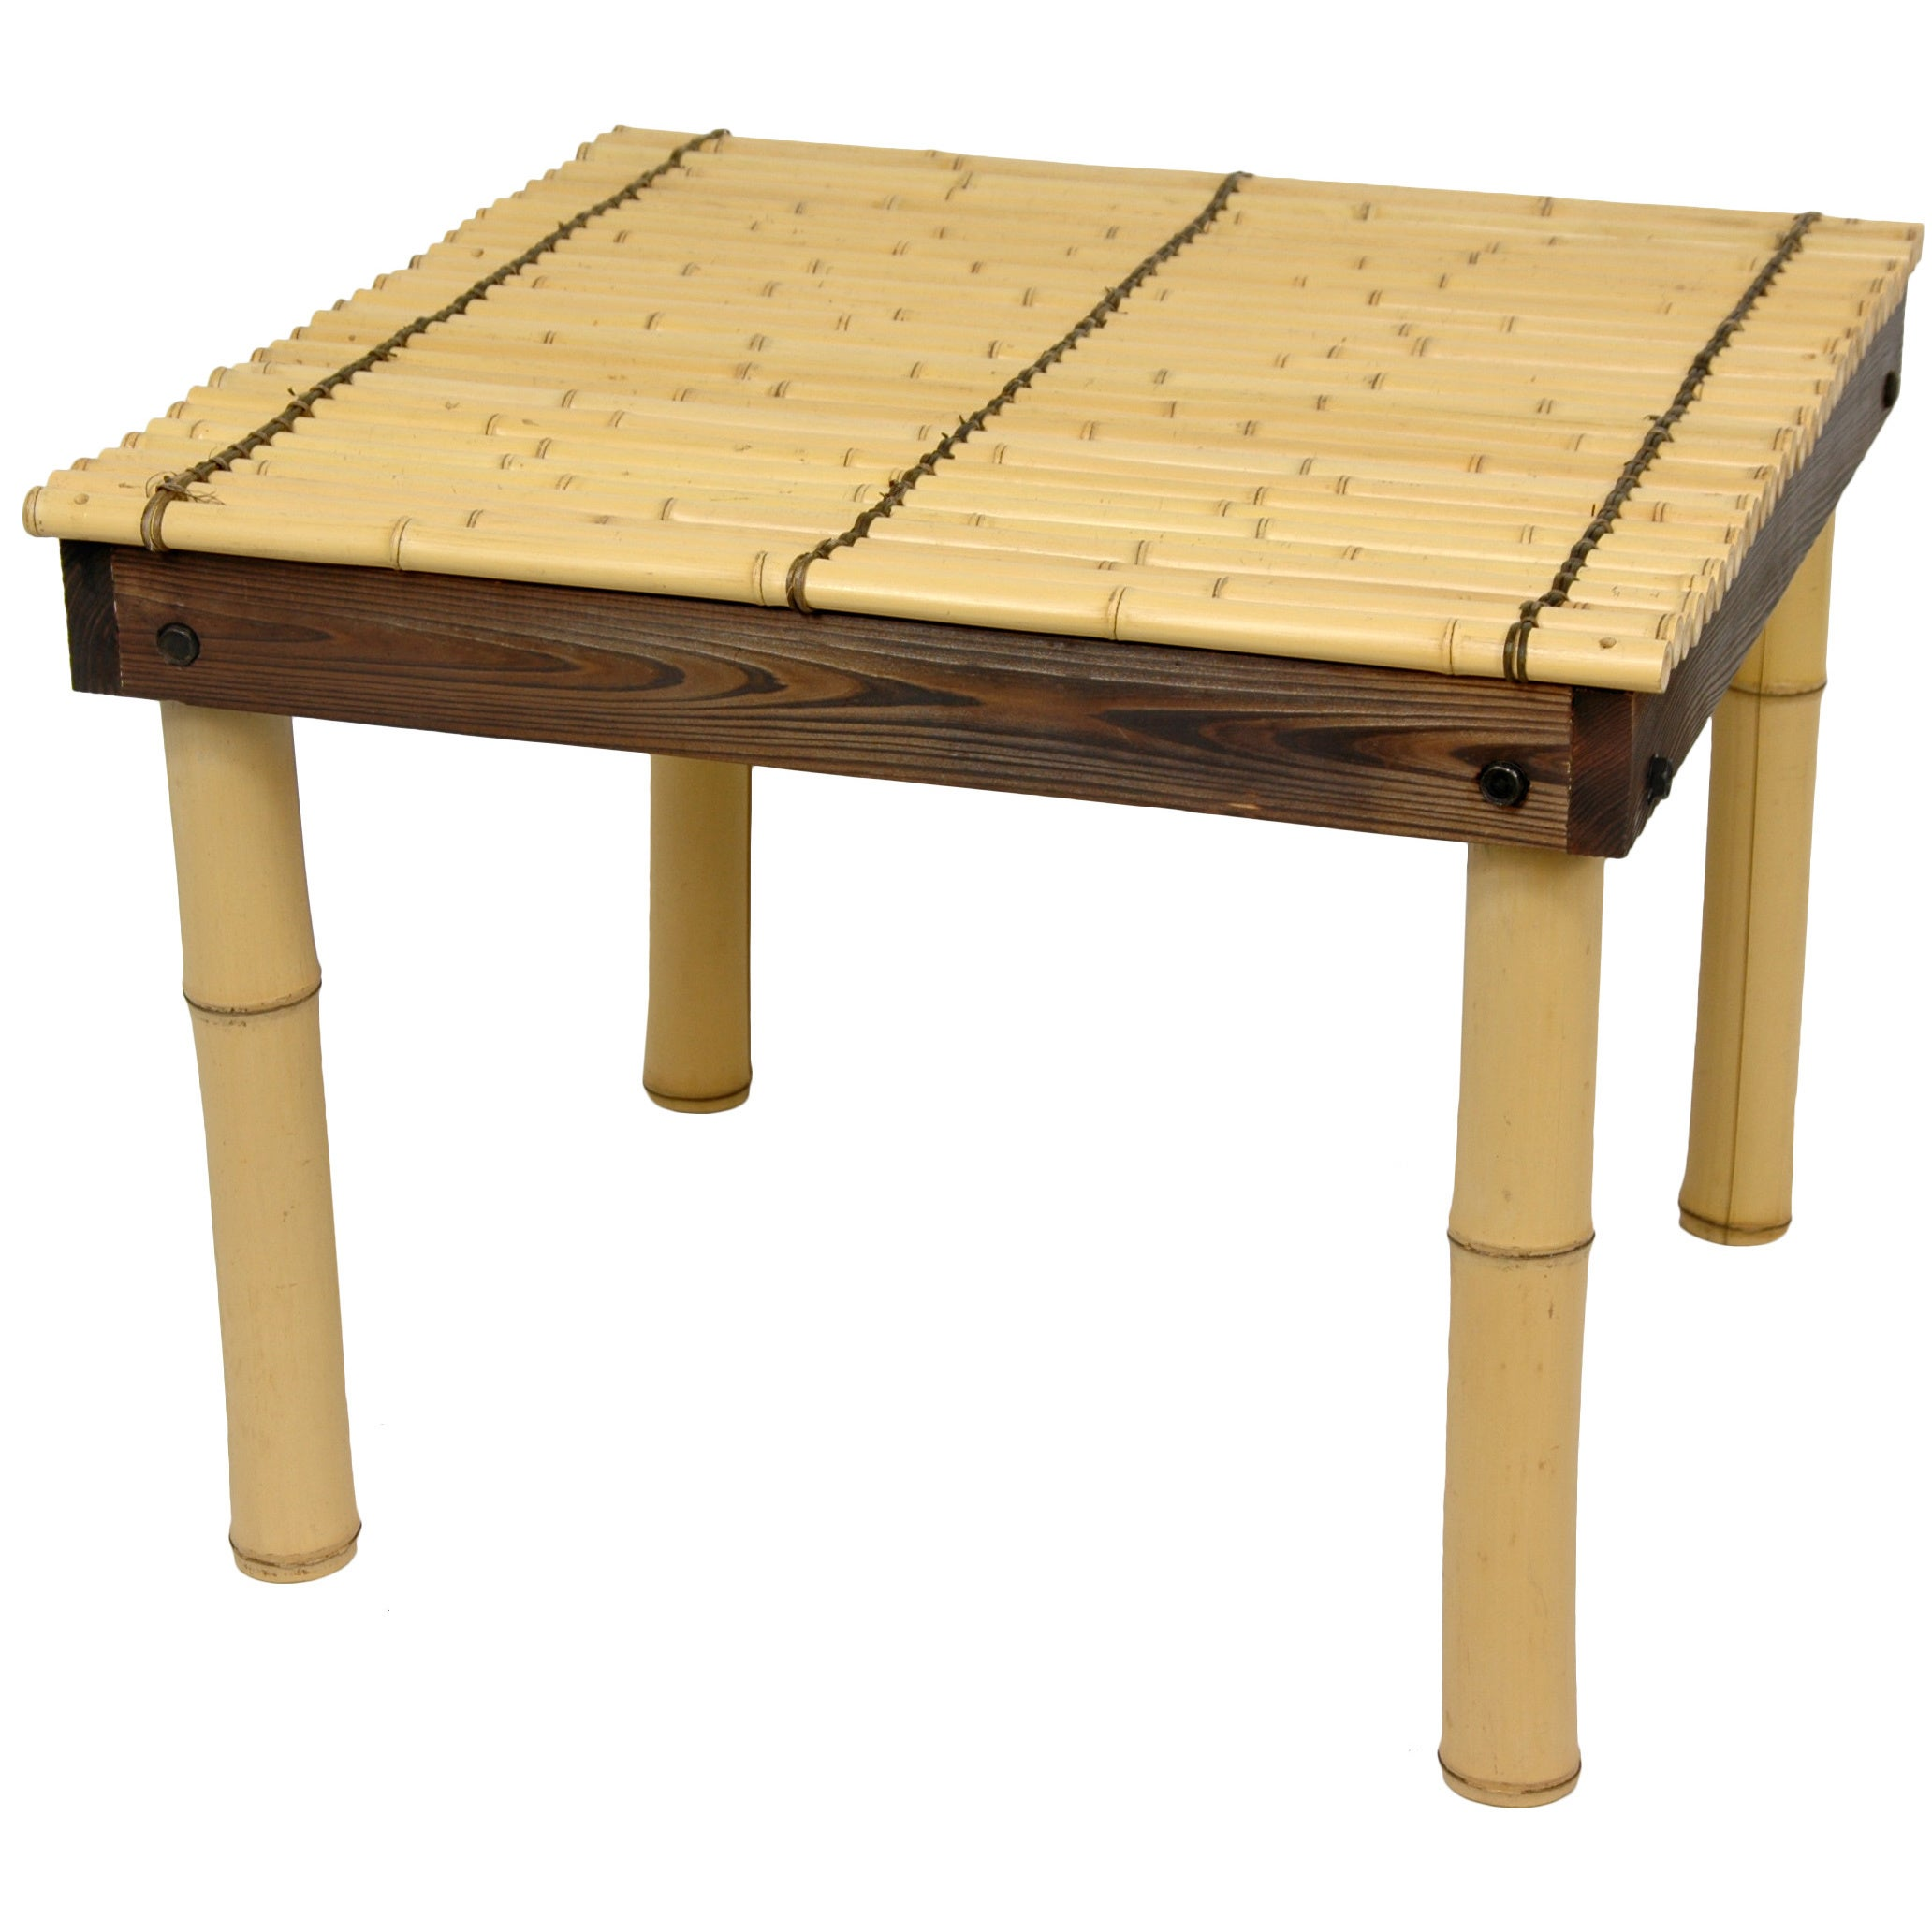 Attirant Zen Bamboo Coffee Table With Four Stools (China)   Free Shipping Today    Overstock.com   14197622